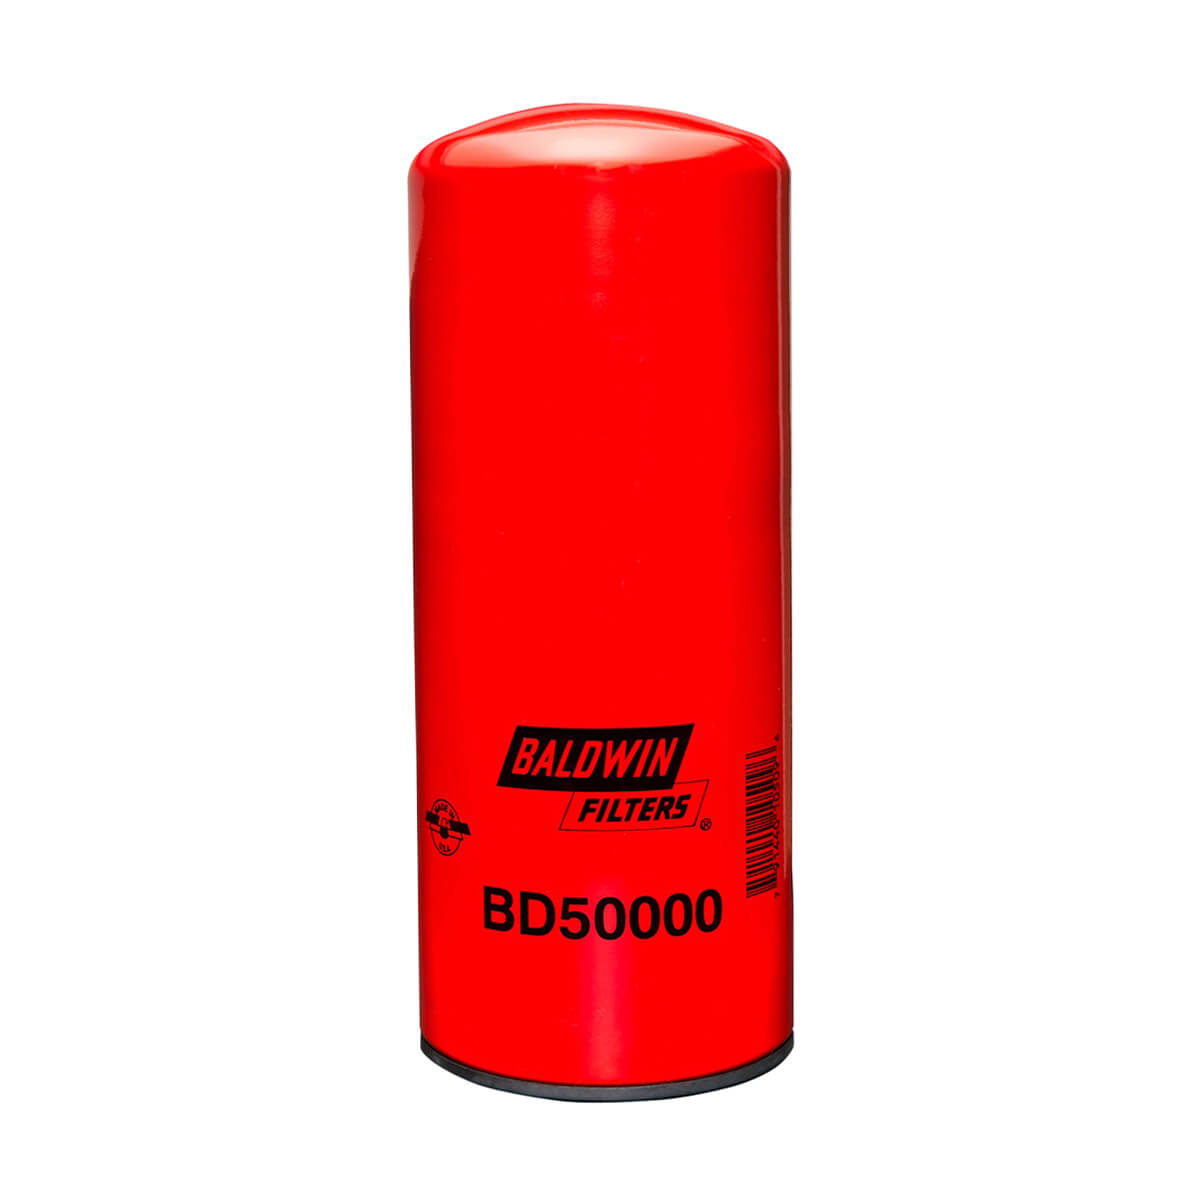 Baldwin Lube Filter BD50000